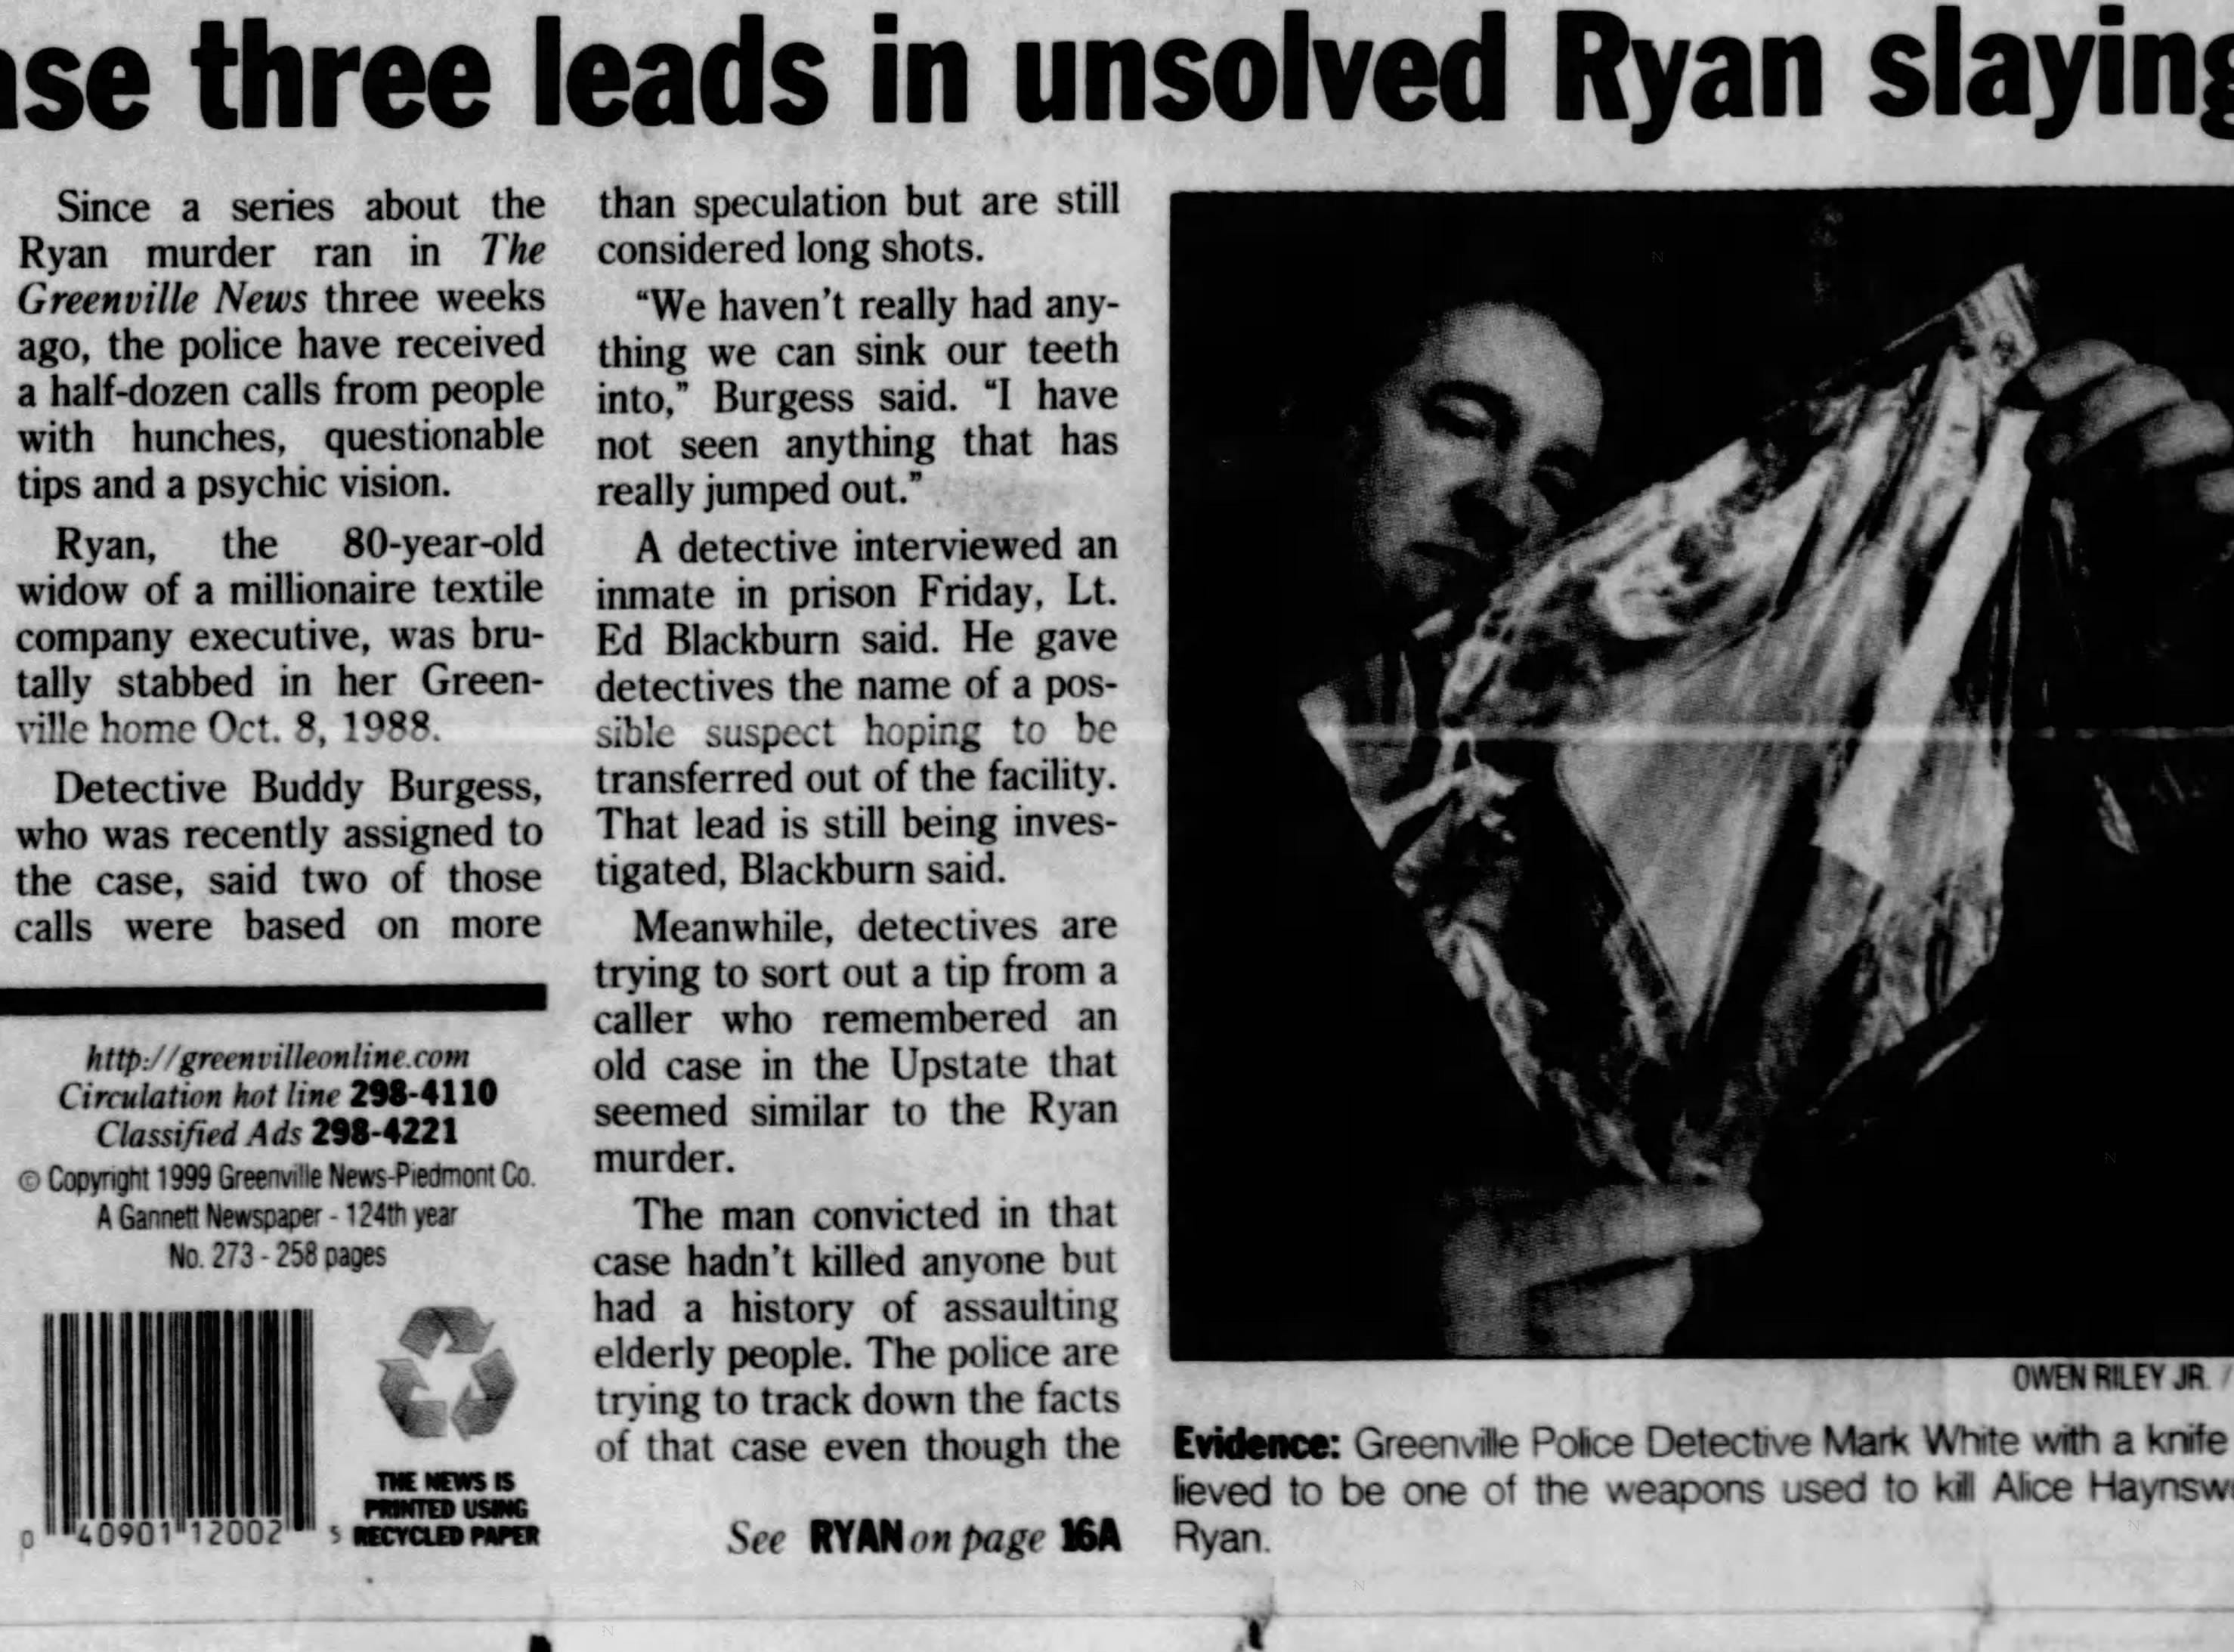 Newspaper clipping from The Greenville News on Sunday, October 24, 1999.